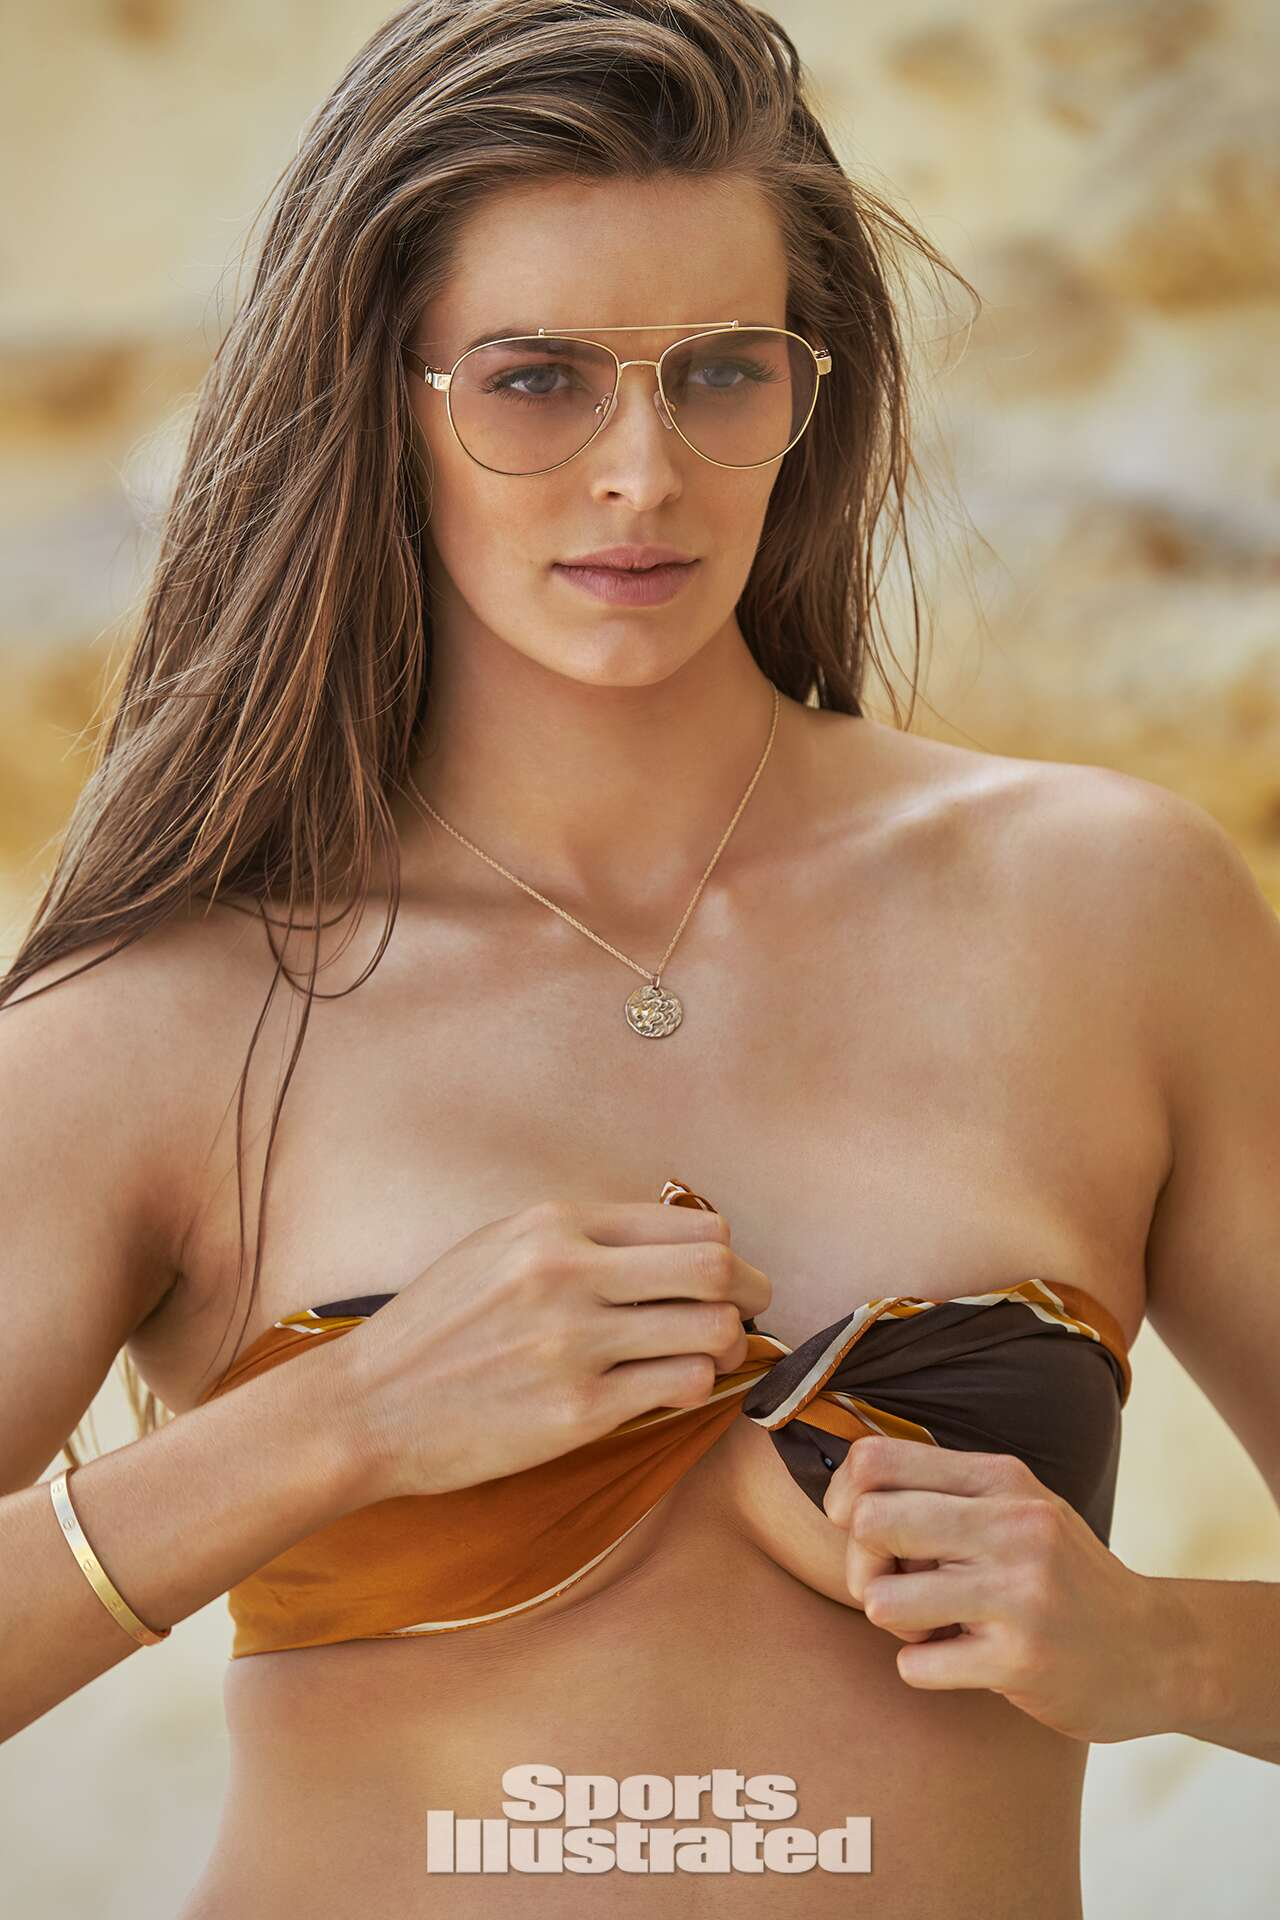 Robyn Lawley was photographed by Ben Watts in Malta.